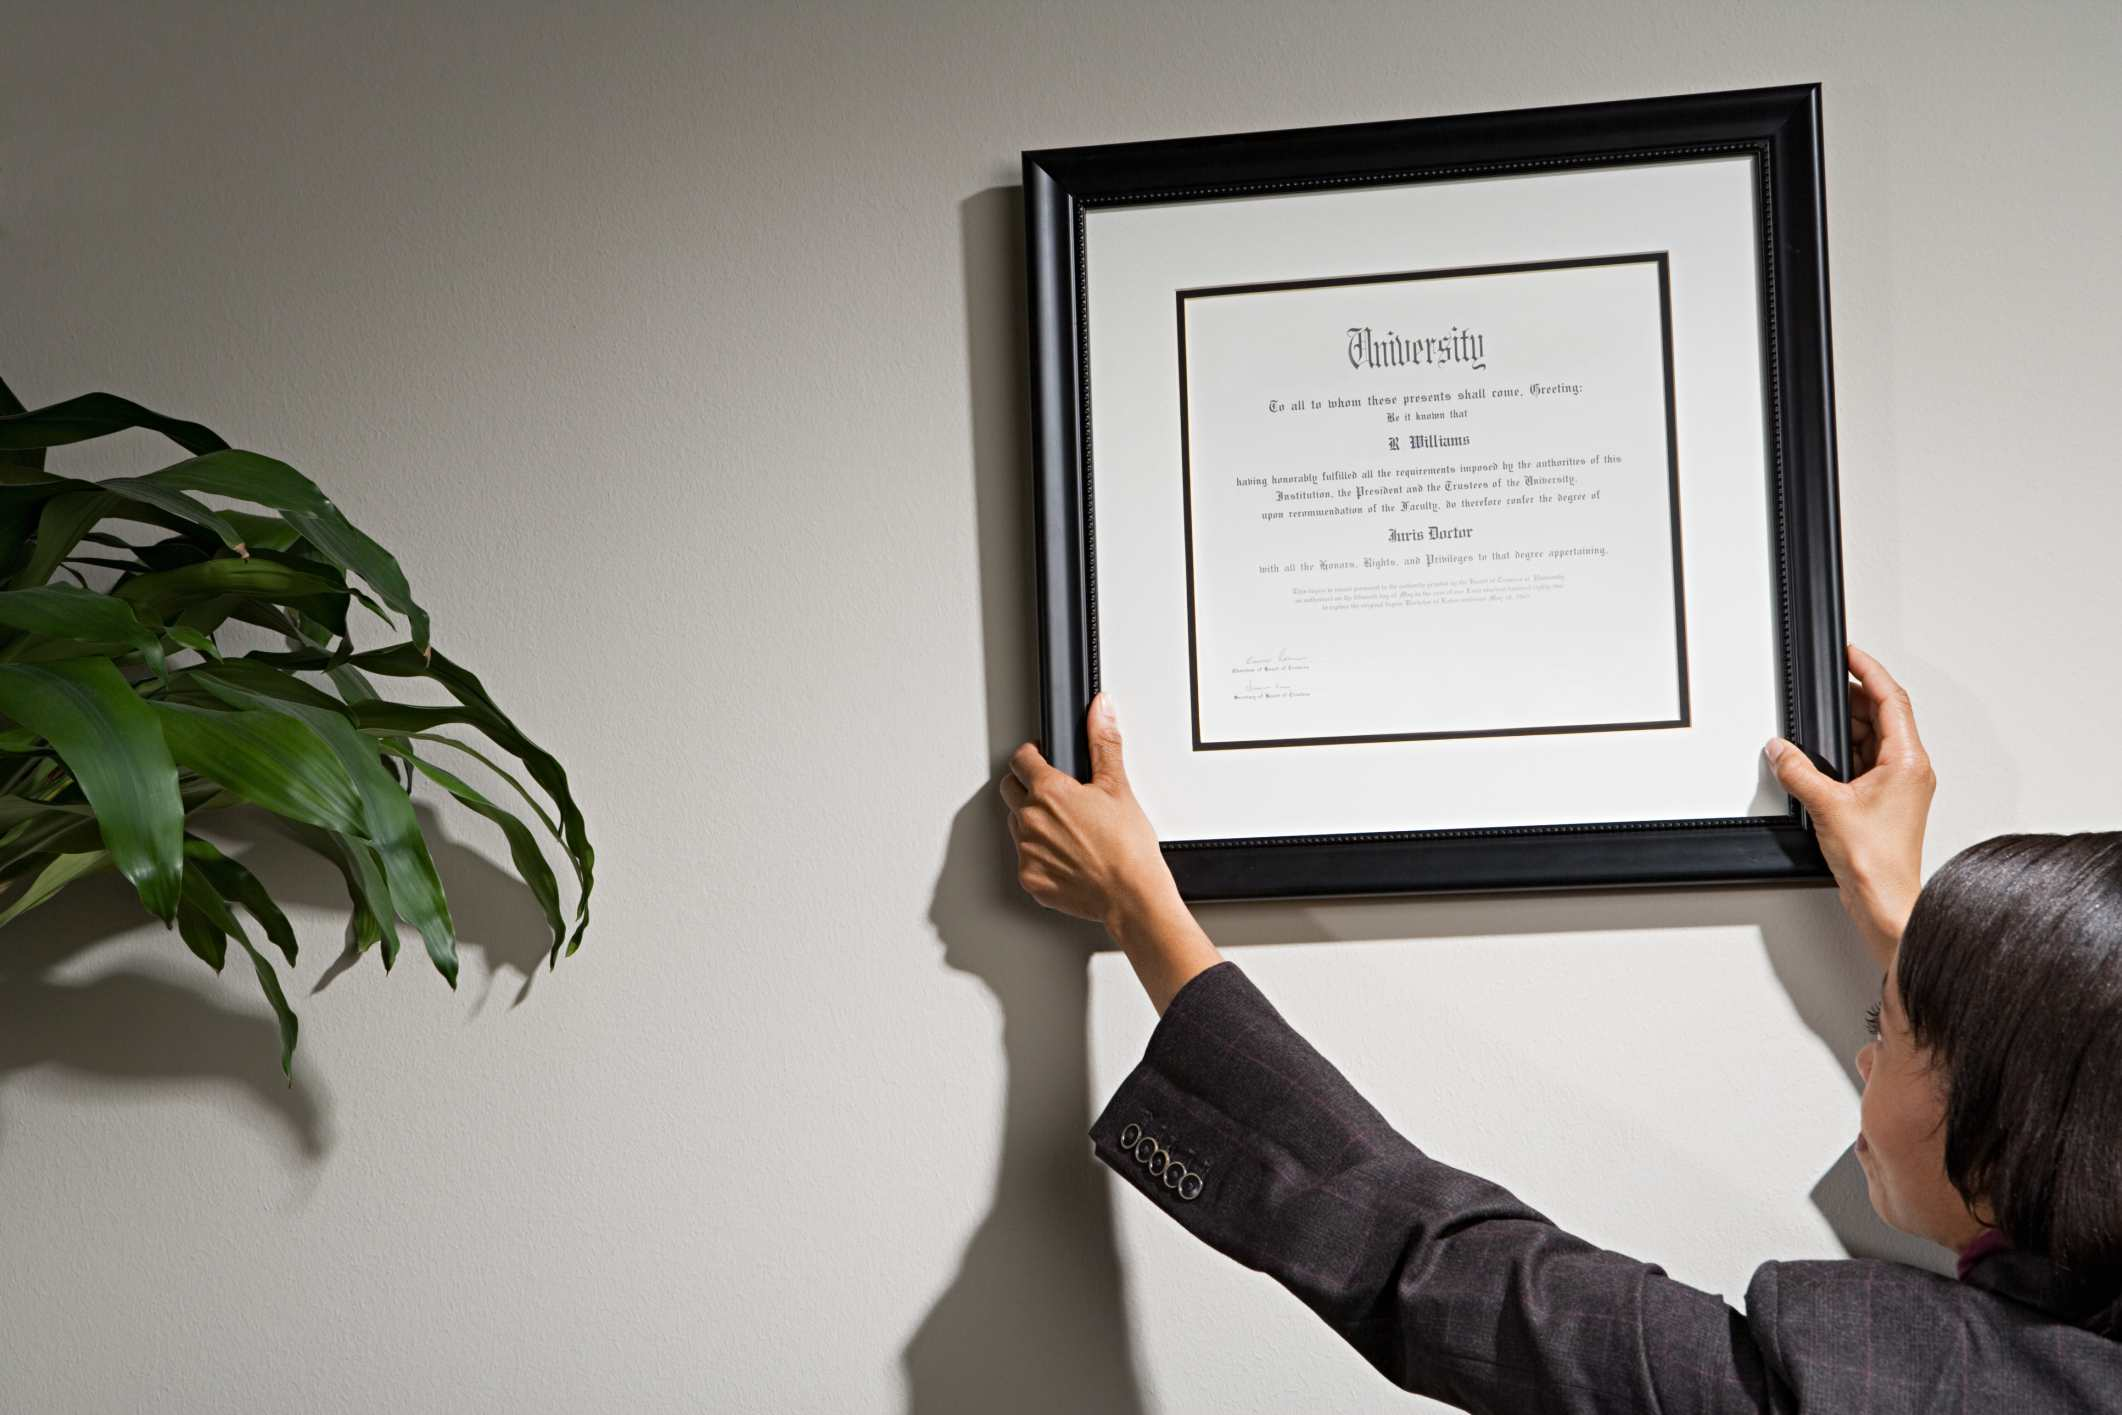 Financial advisor hanging credentials on the wall.